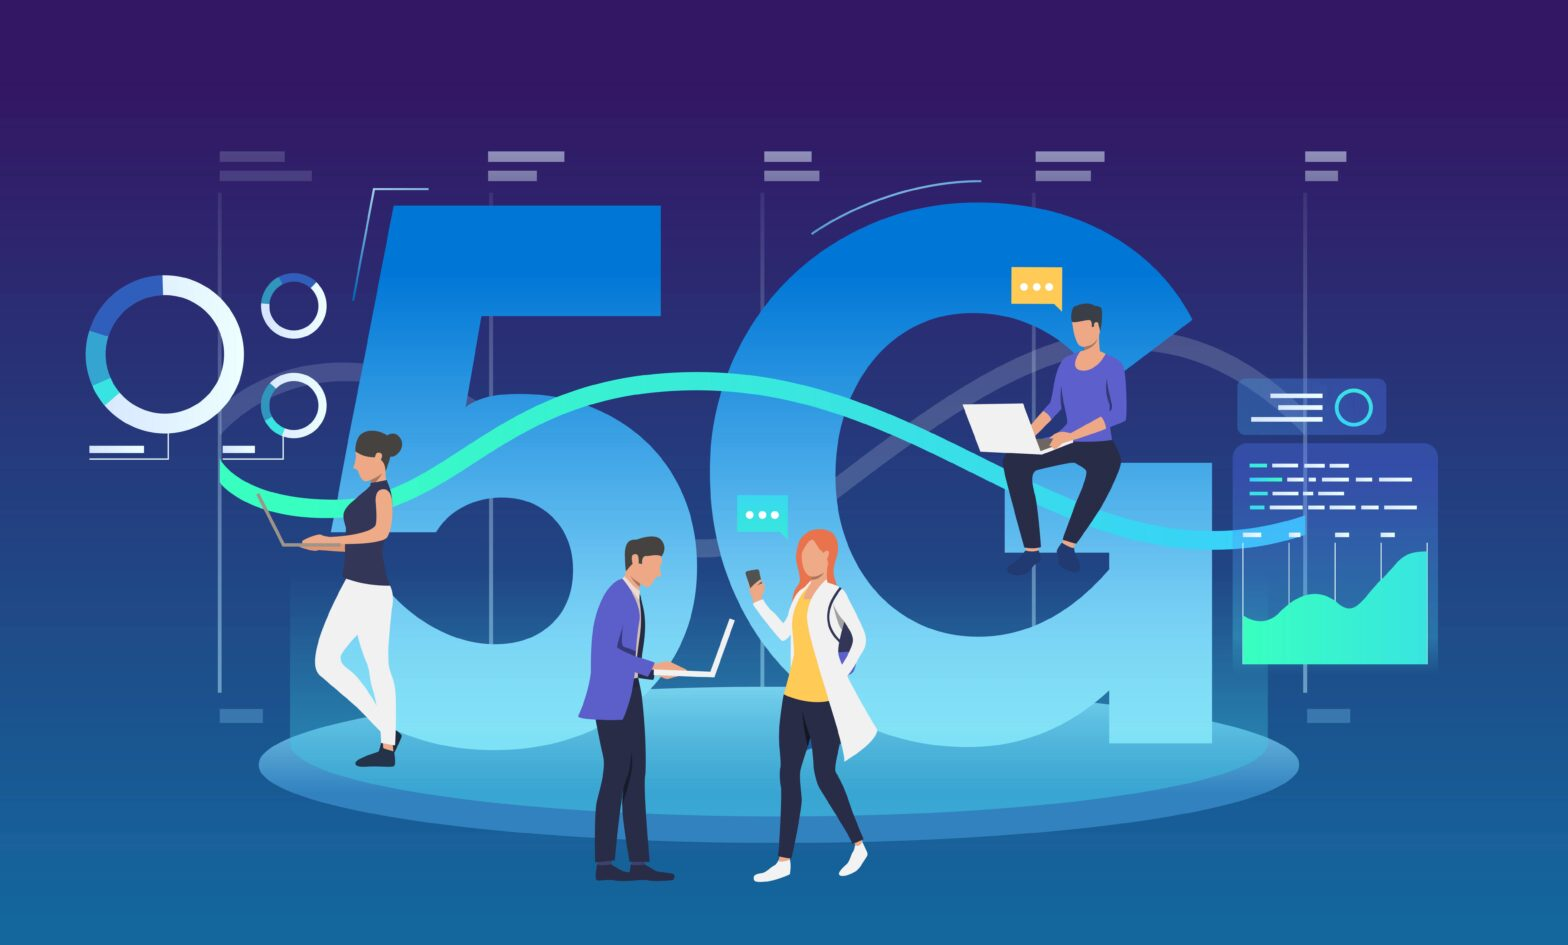 Software Infrastructure for 5G